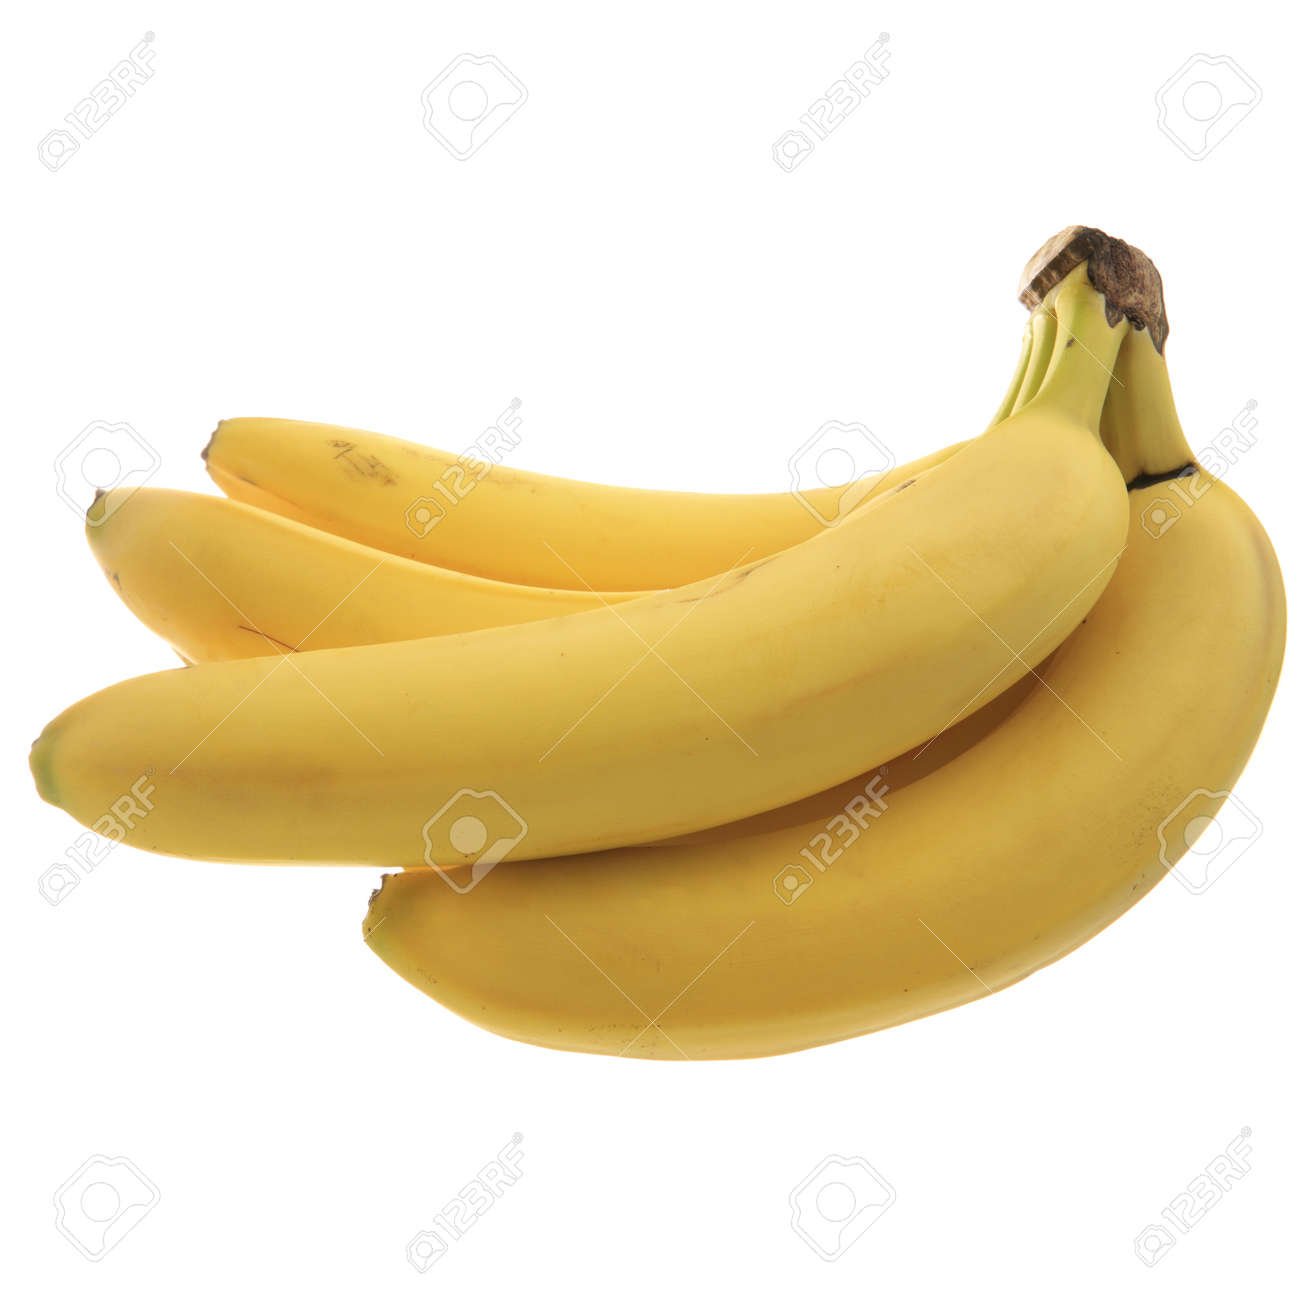 Food Related: Bunch of Bananas isolated on white Stock Photo - 4738442